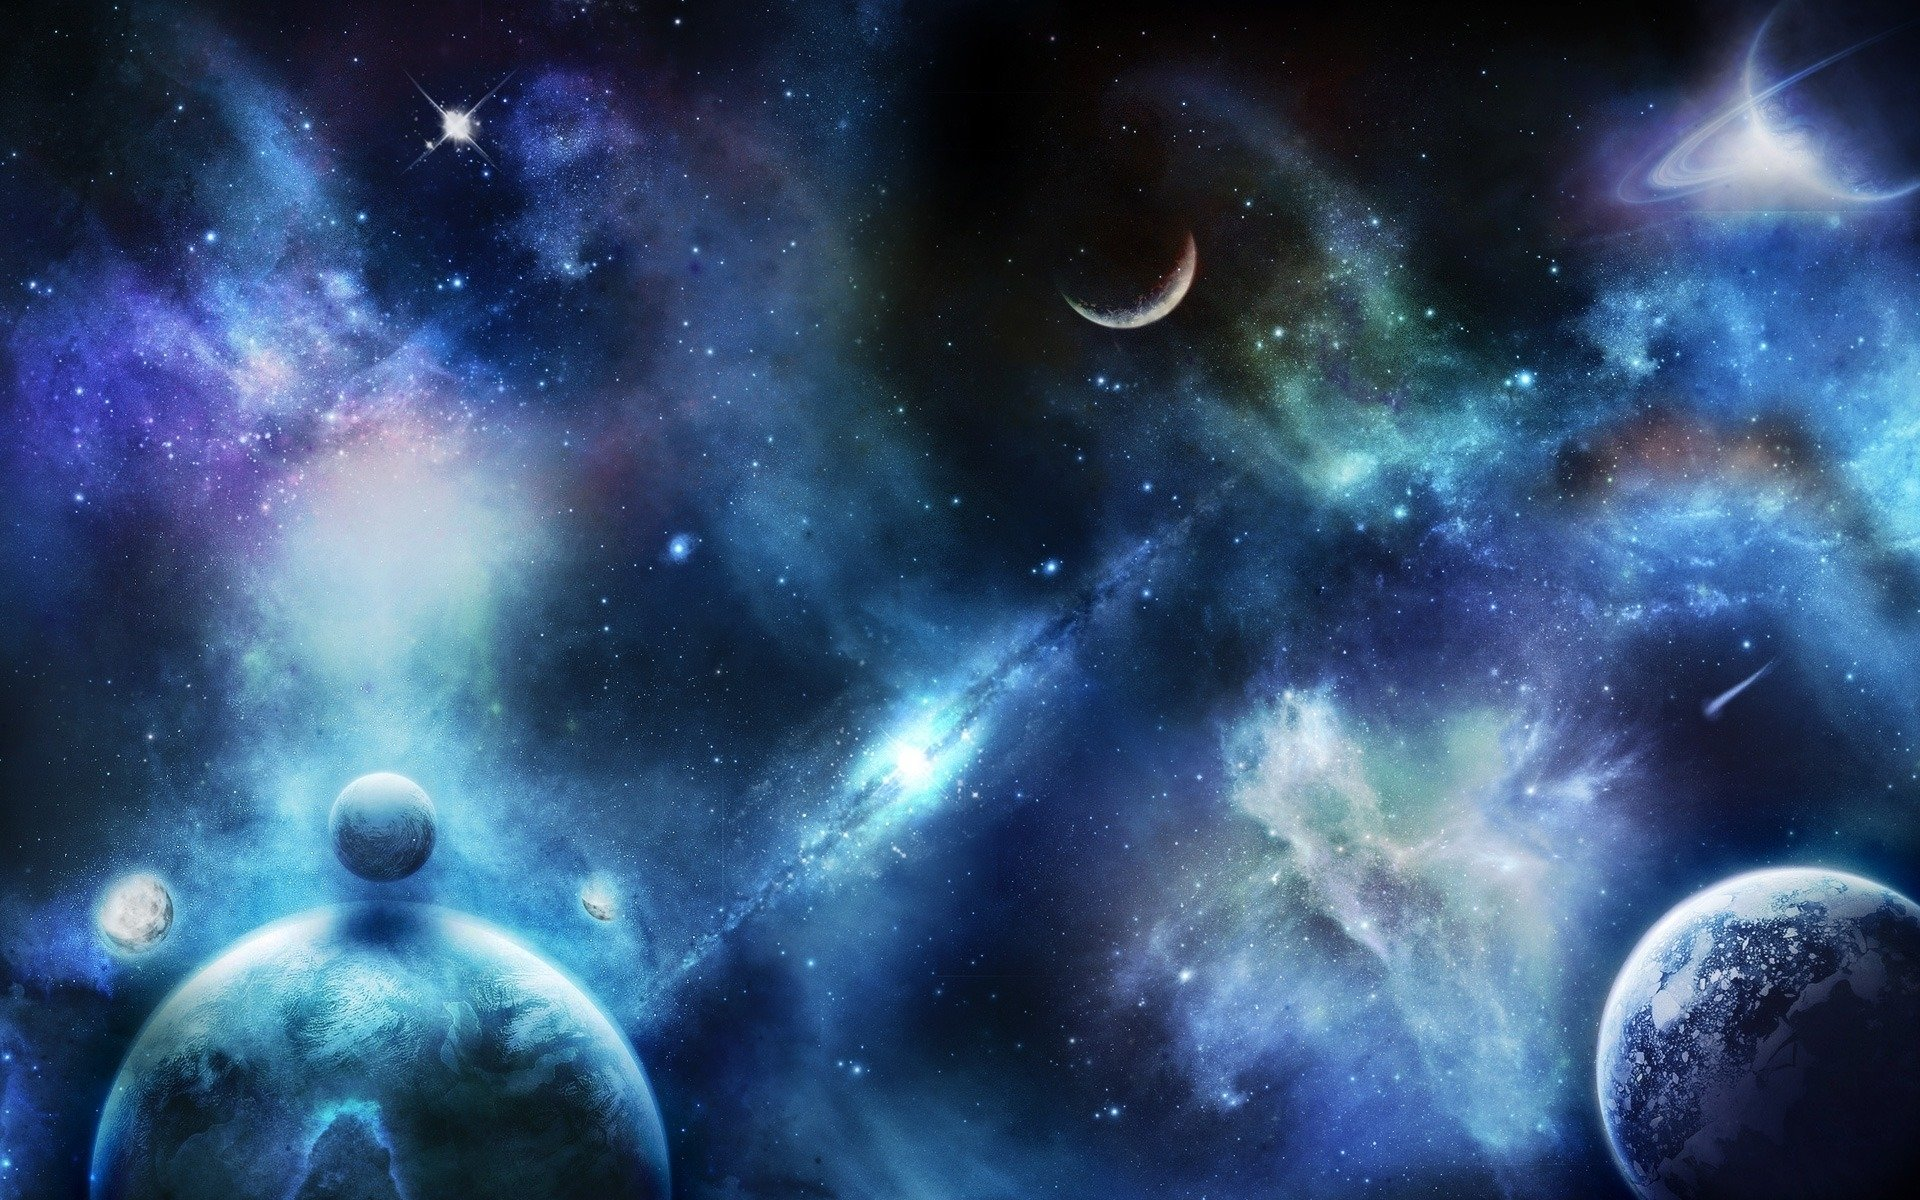 space wallpaper 3 1920x1200